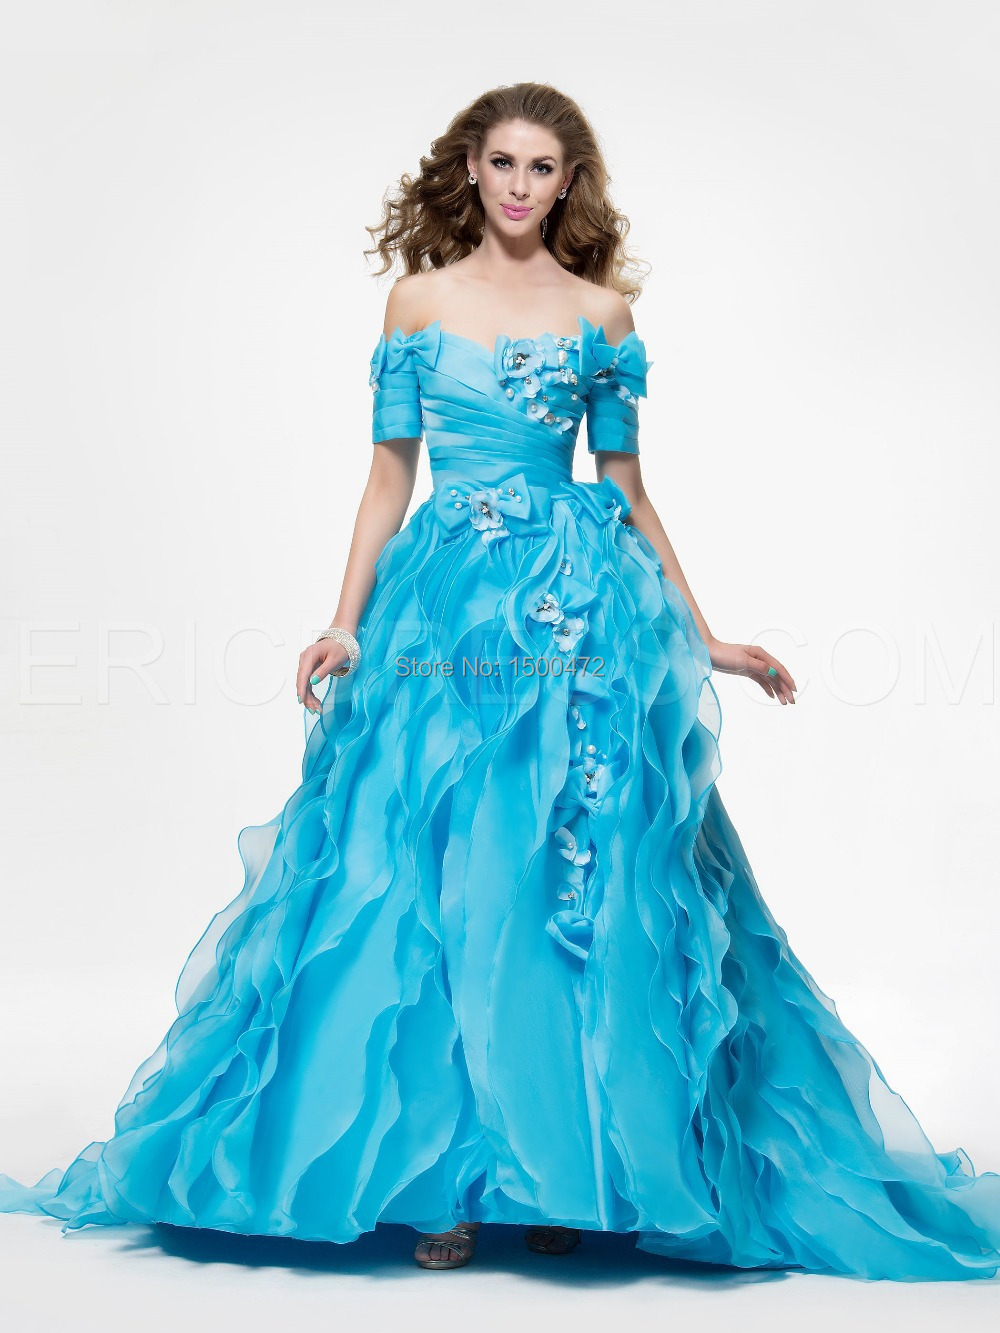 cf8c5465611 Get Quotations · Amazing Short Sleeves Bow knot Pearls Ball Gown Sweetheart  Quinceanera Dresses 2014 vestidos 15 anos Sweet